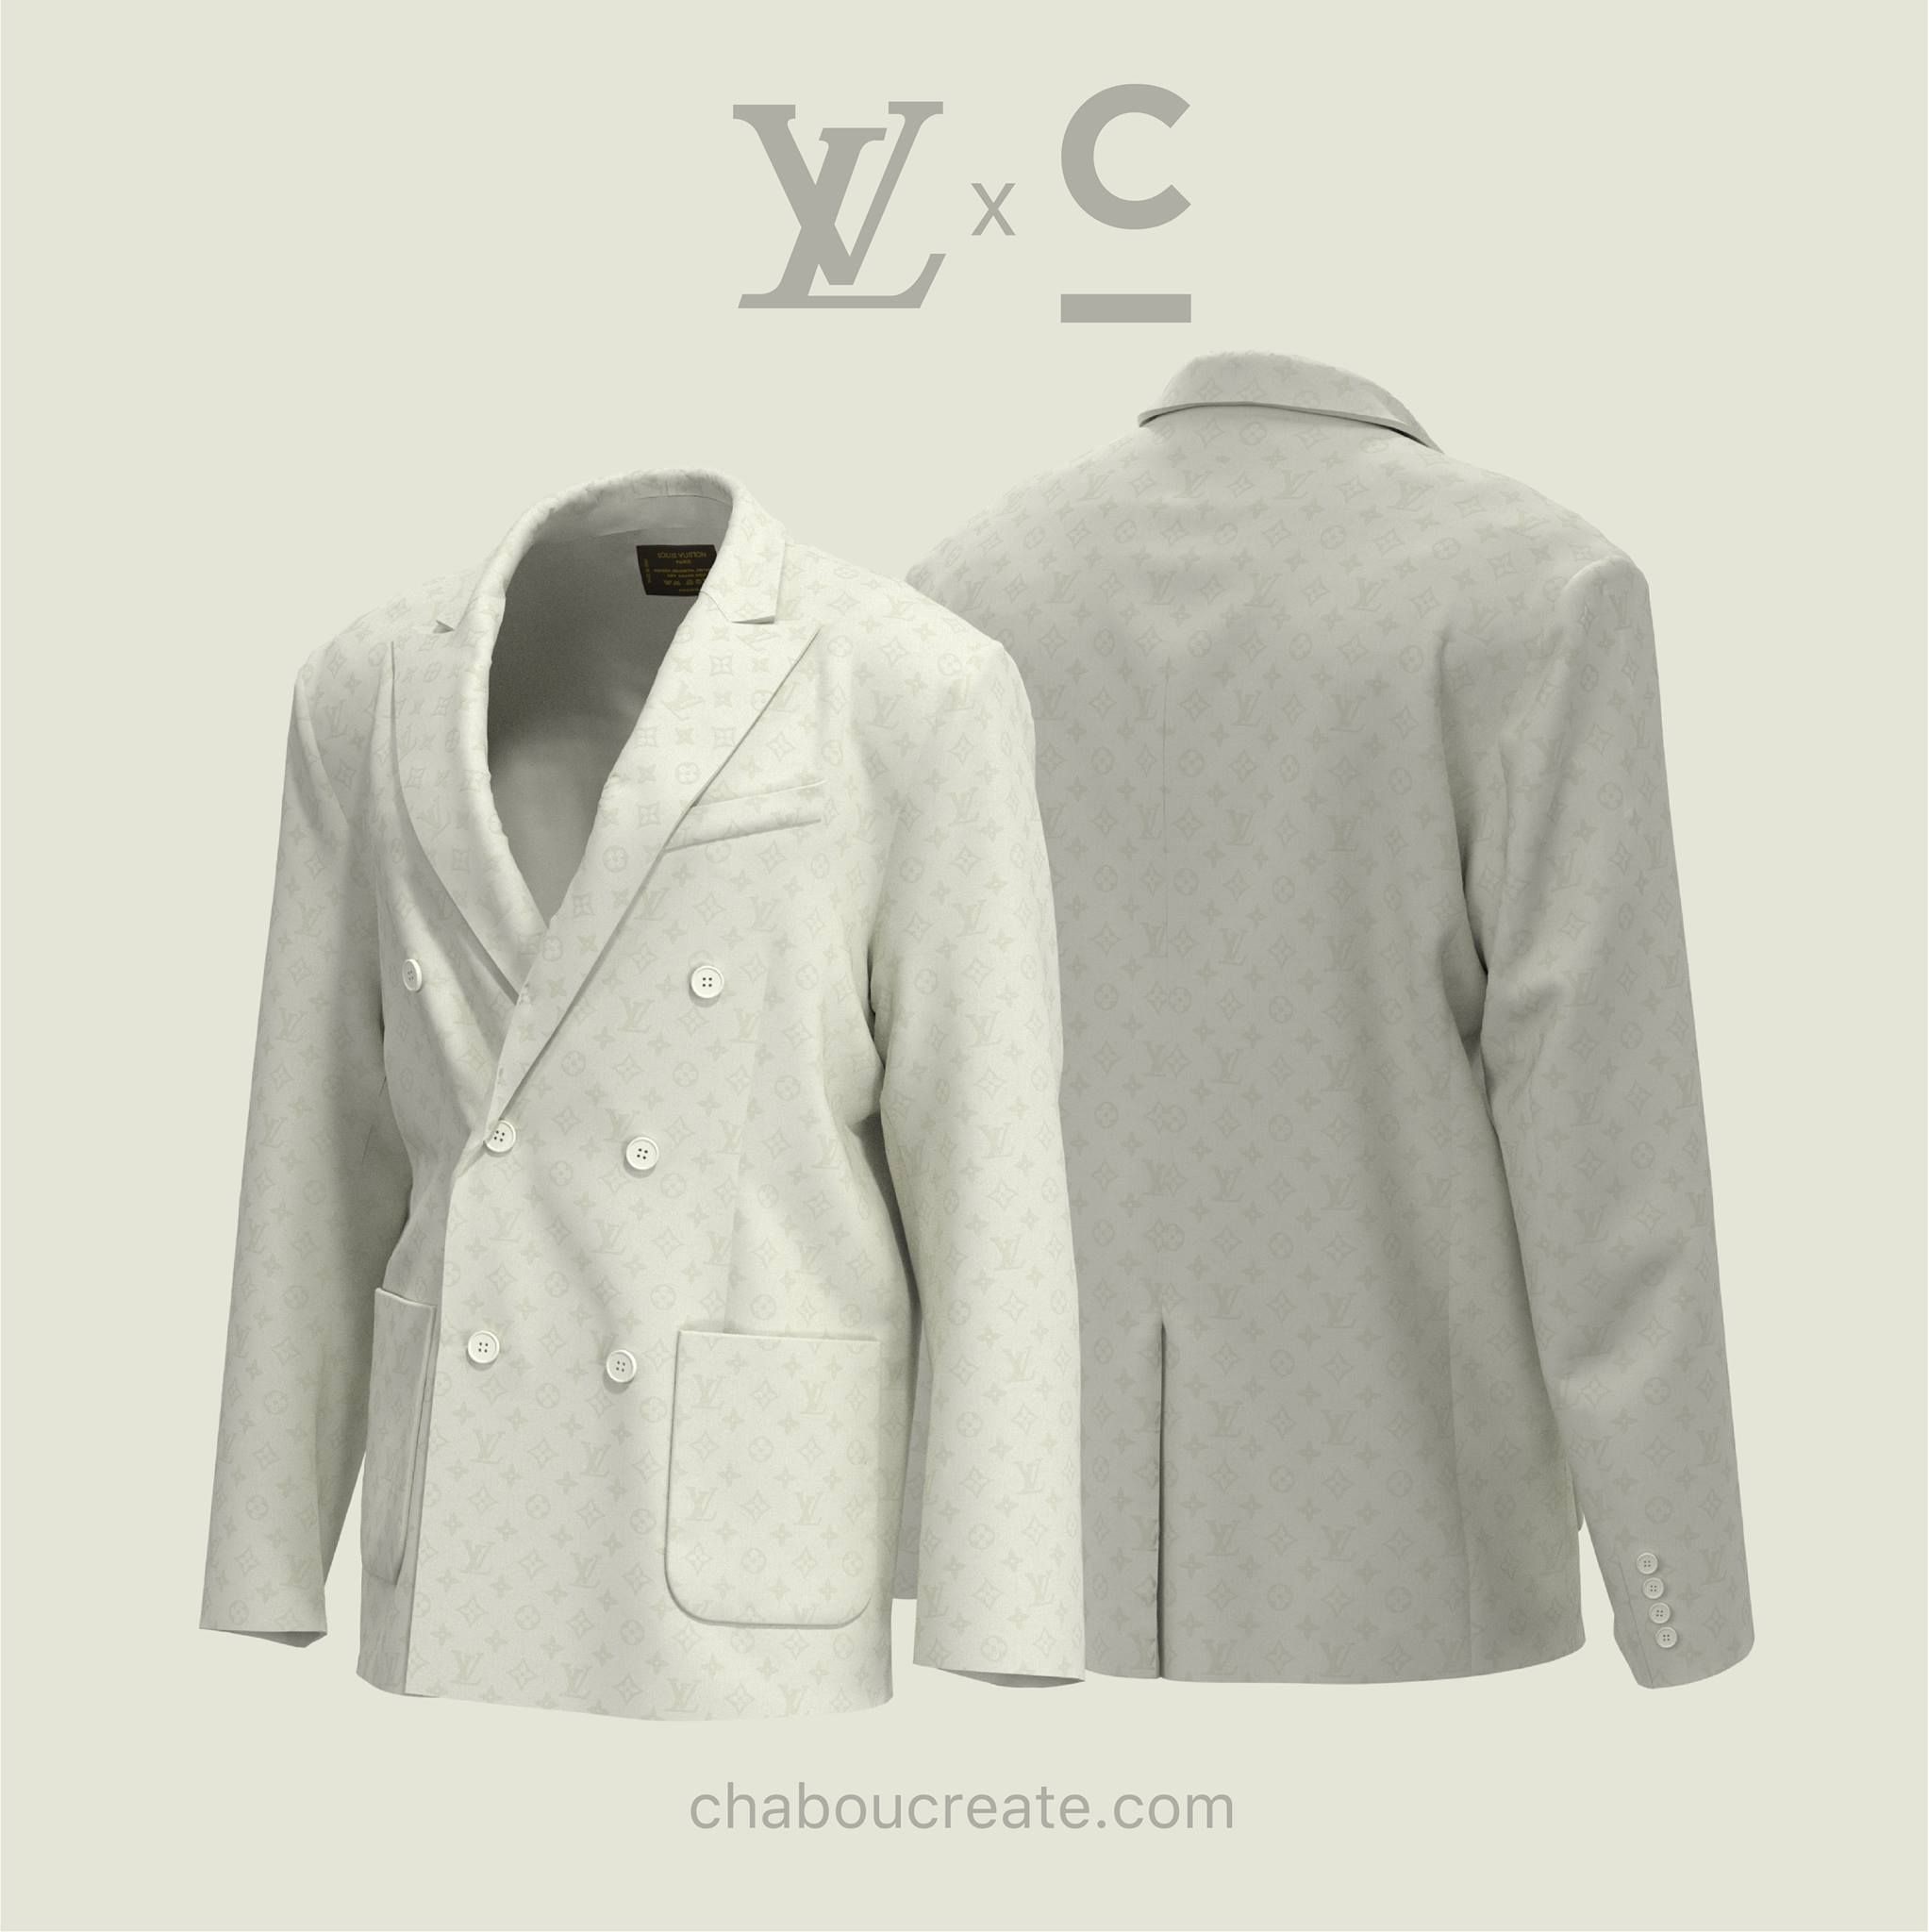 Louis Vuitton Blazers Designed In Clo By User Clo3d Virtualfashion 3dfashiondesign Fashion Design Software Virtual Fashion Blazer Designs